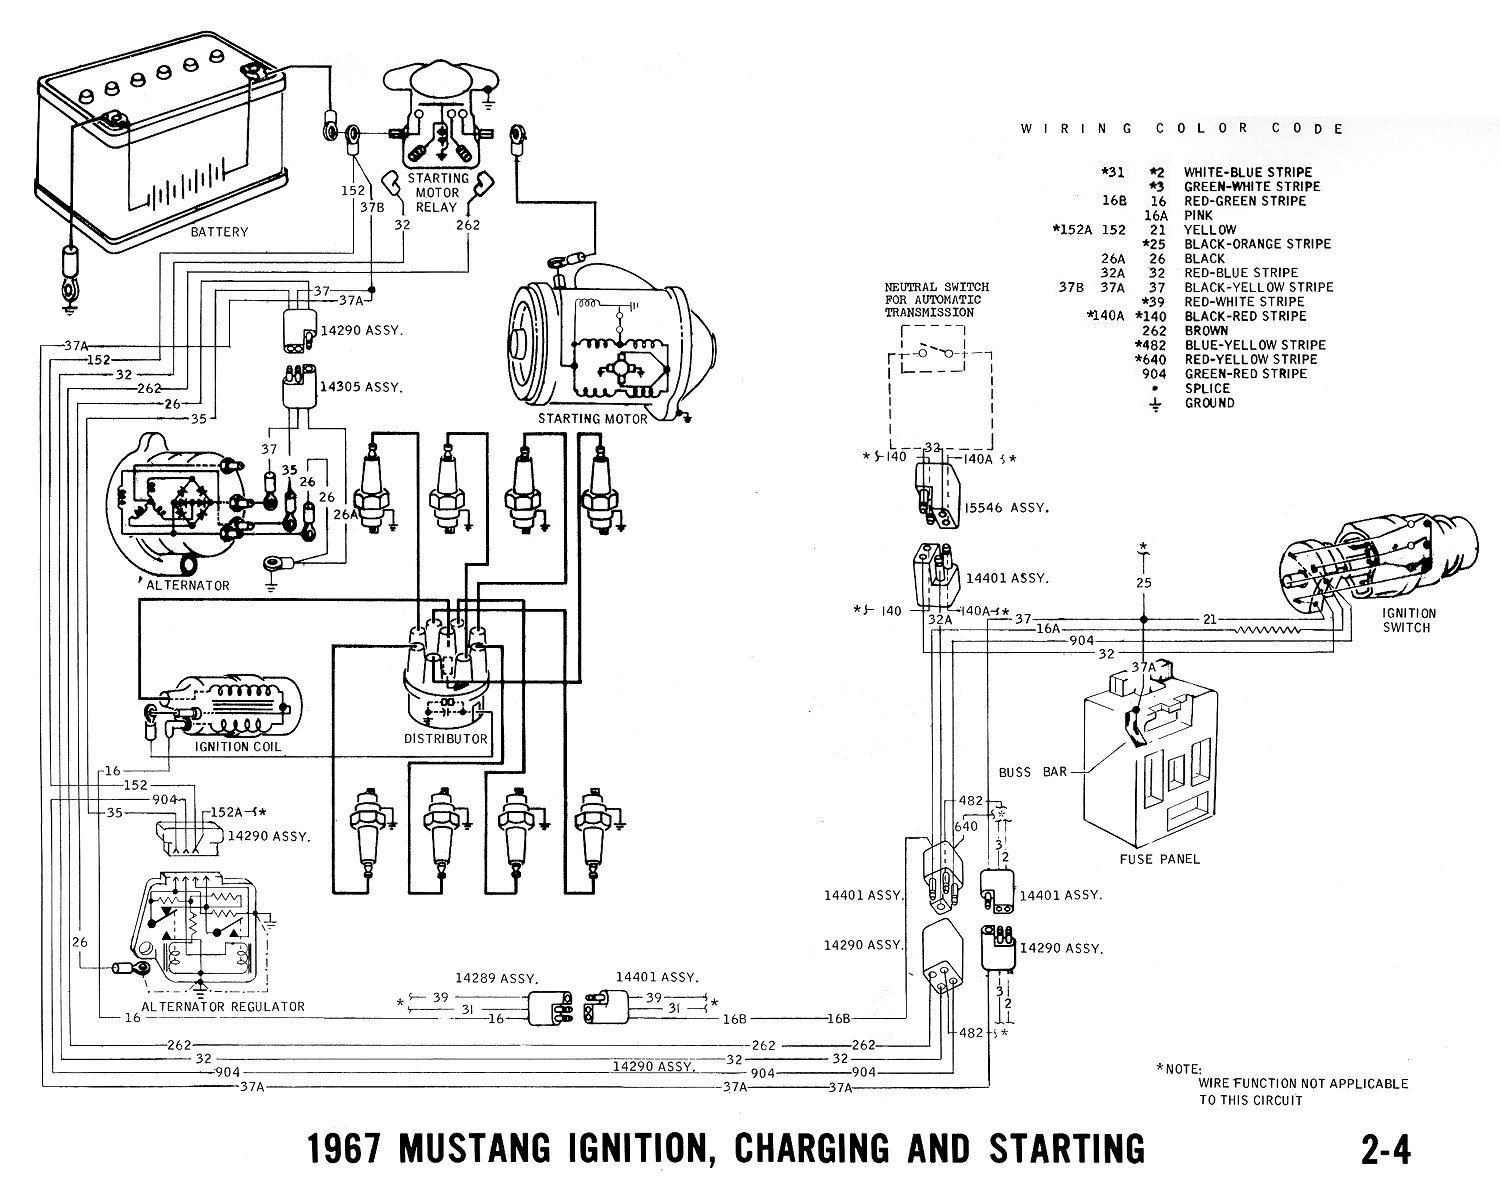 hight resolution of 1970 mustang engine diagram wiring diagram sheet 2002 seaswirl striper wiring diagram